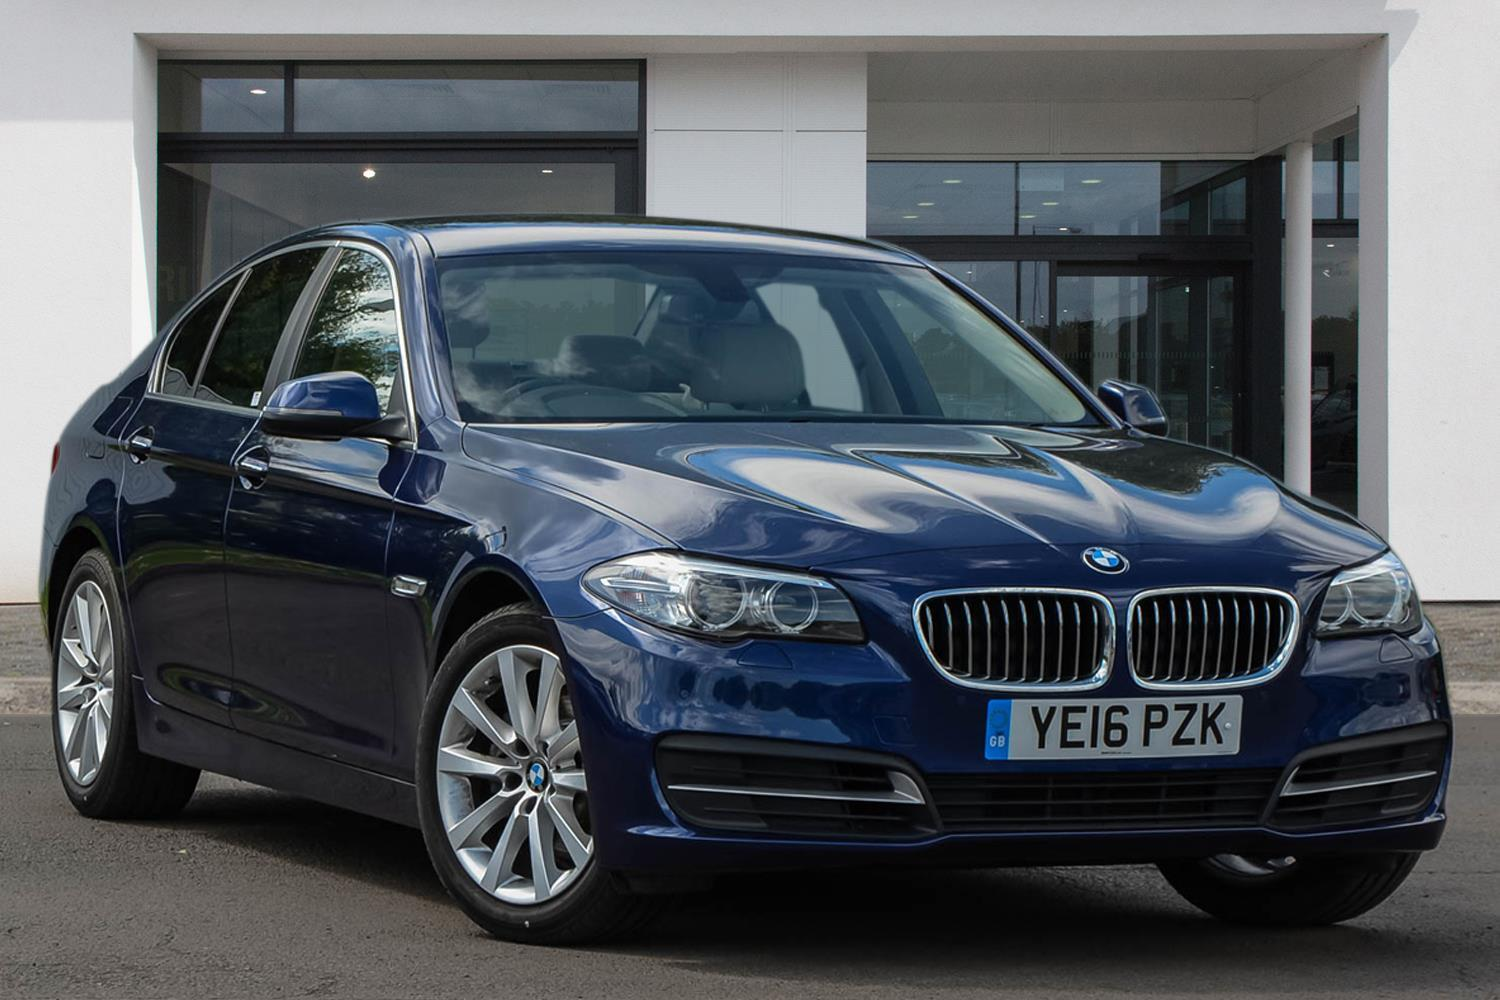 BMW 5 Series Saloon YE16PZK - Image 2